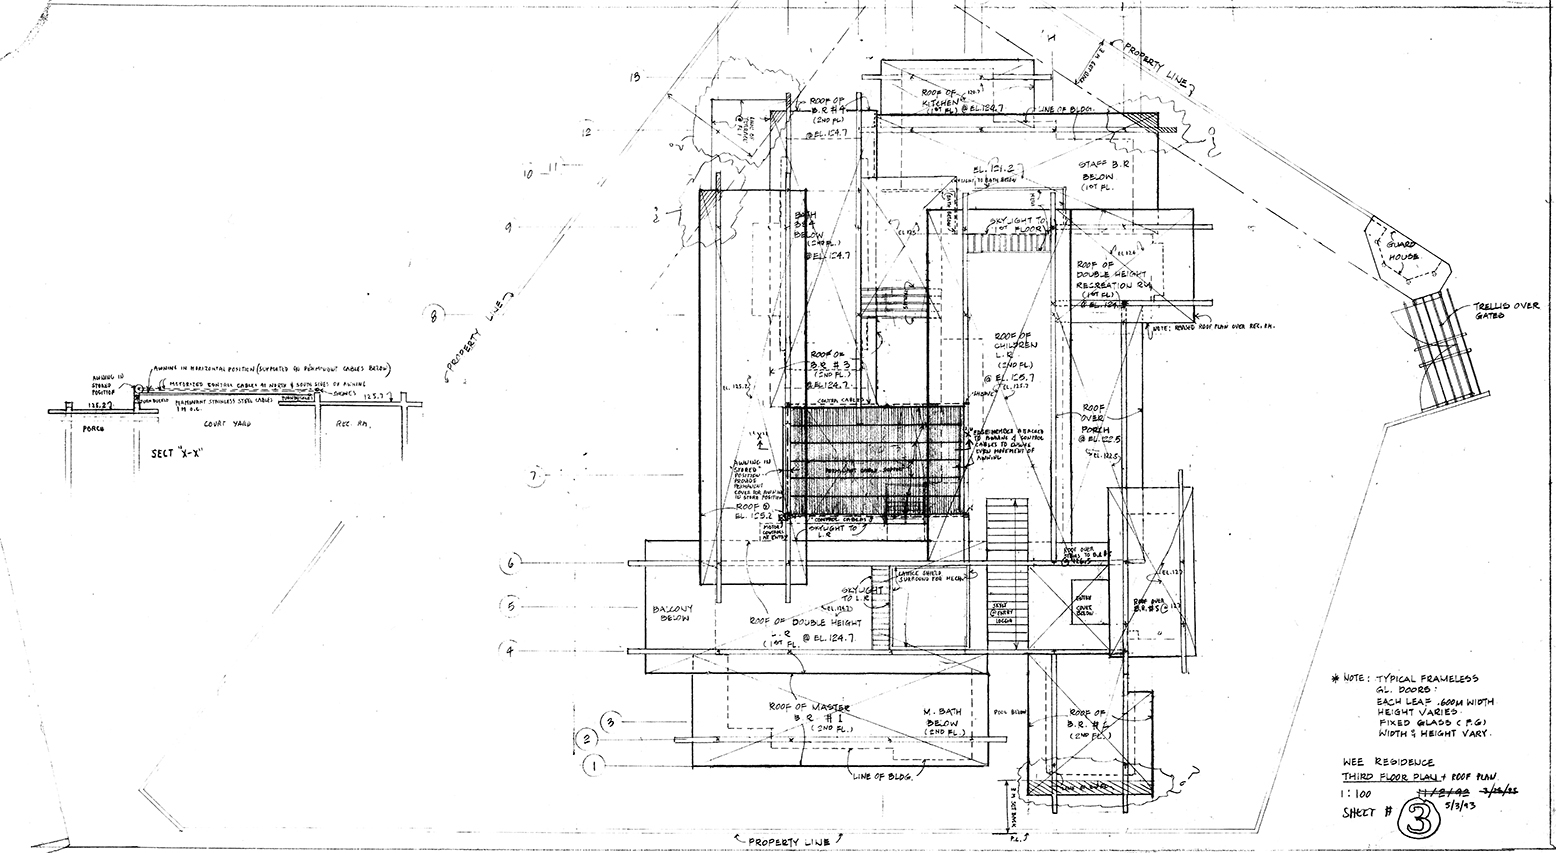 Wee Ee Chao Residence, Singapore. Roof Plan. Drawing dated May 03, 1993.